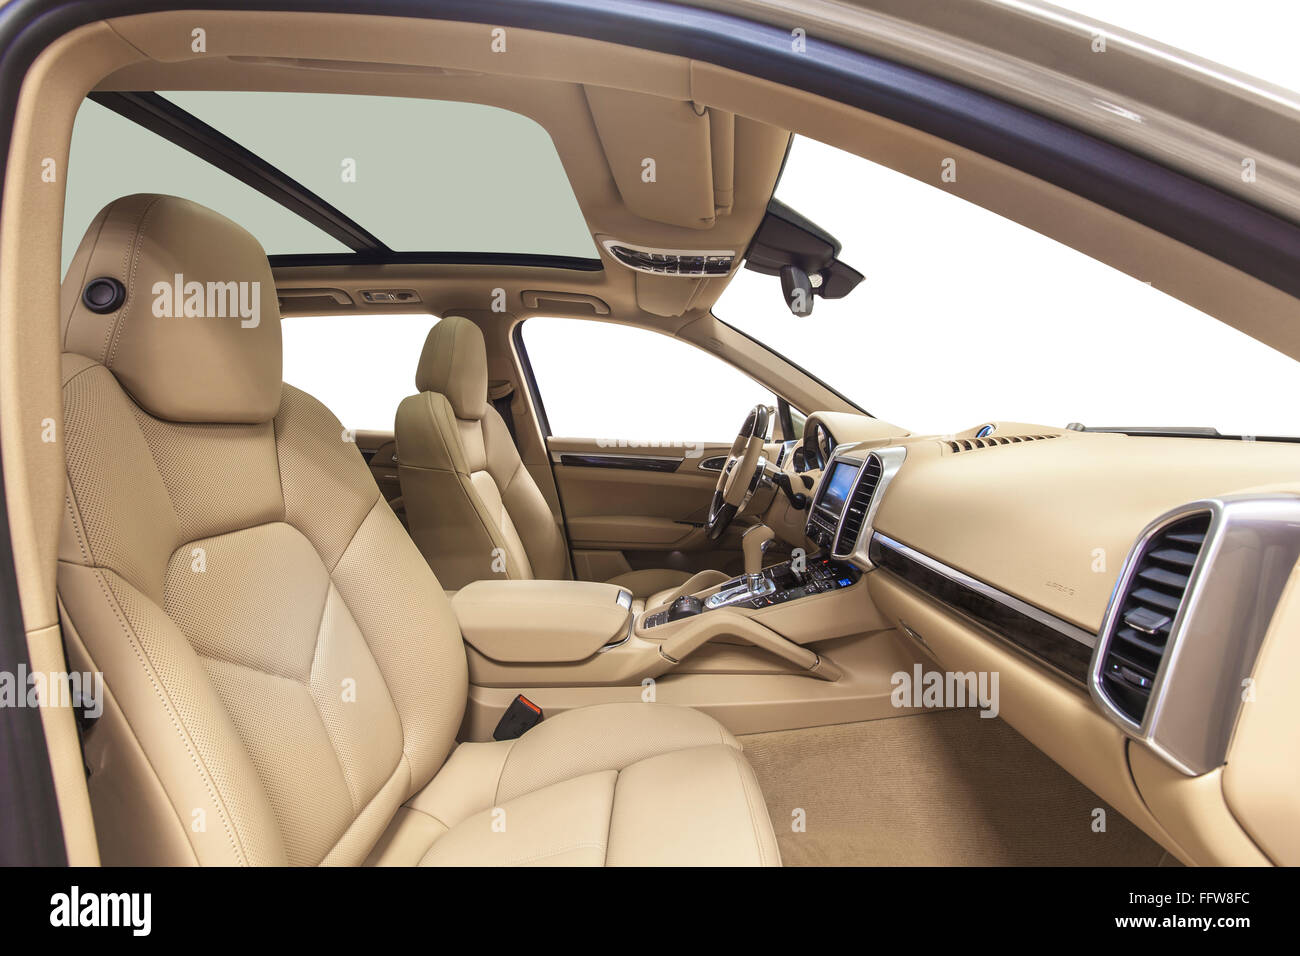 Car Interior Luxury Beige Seats With Panoramic Roof Comfortable